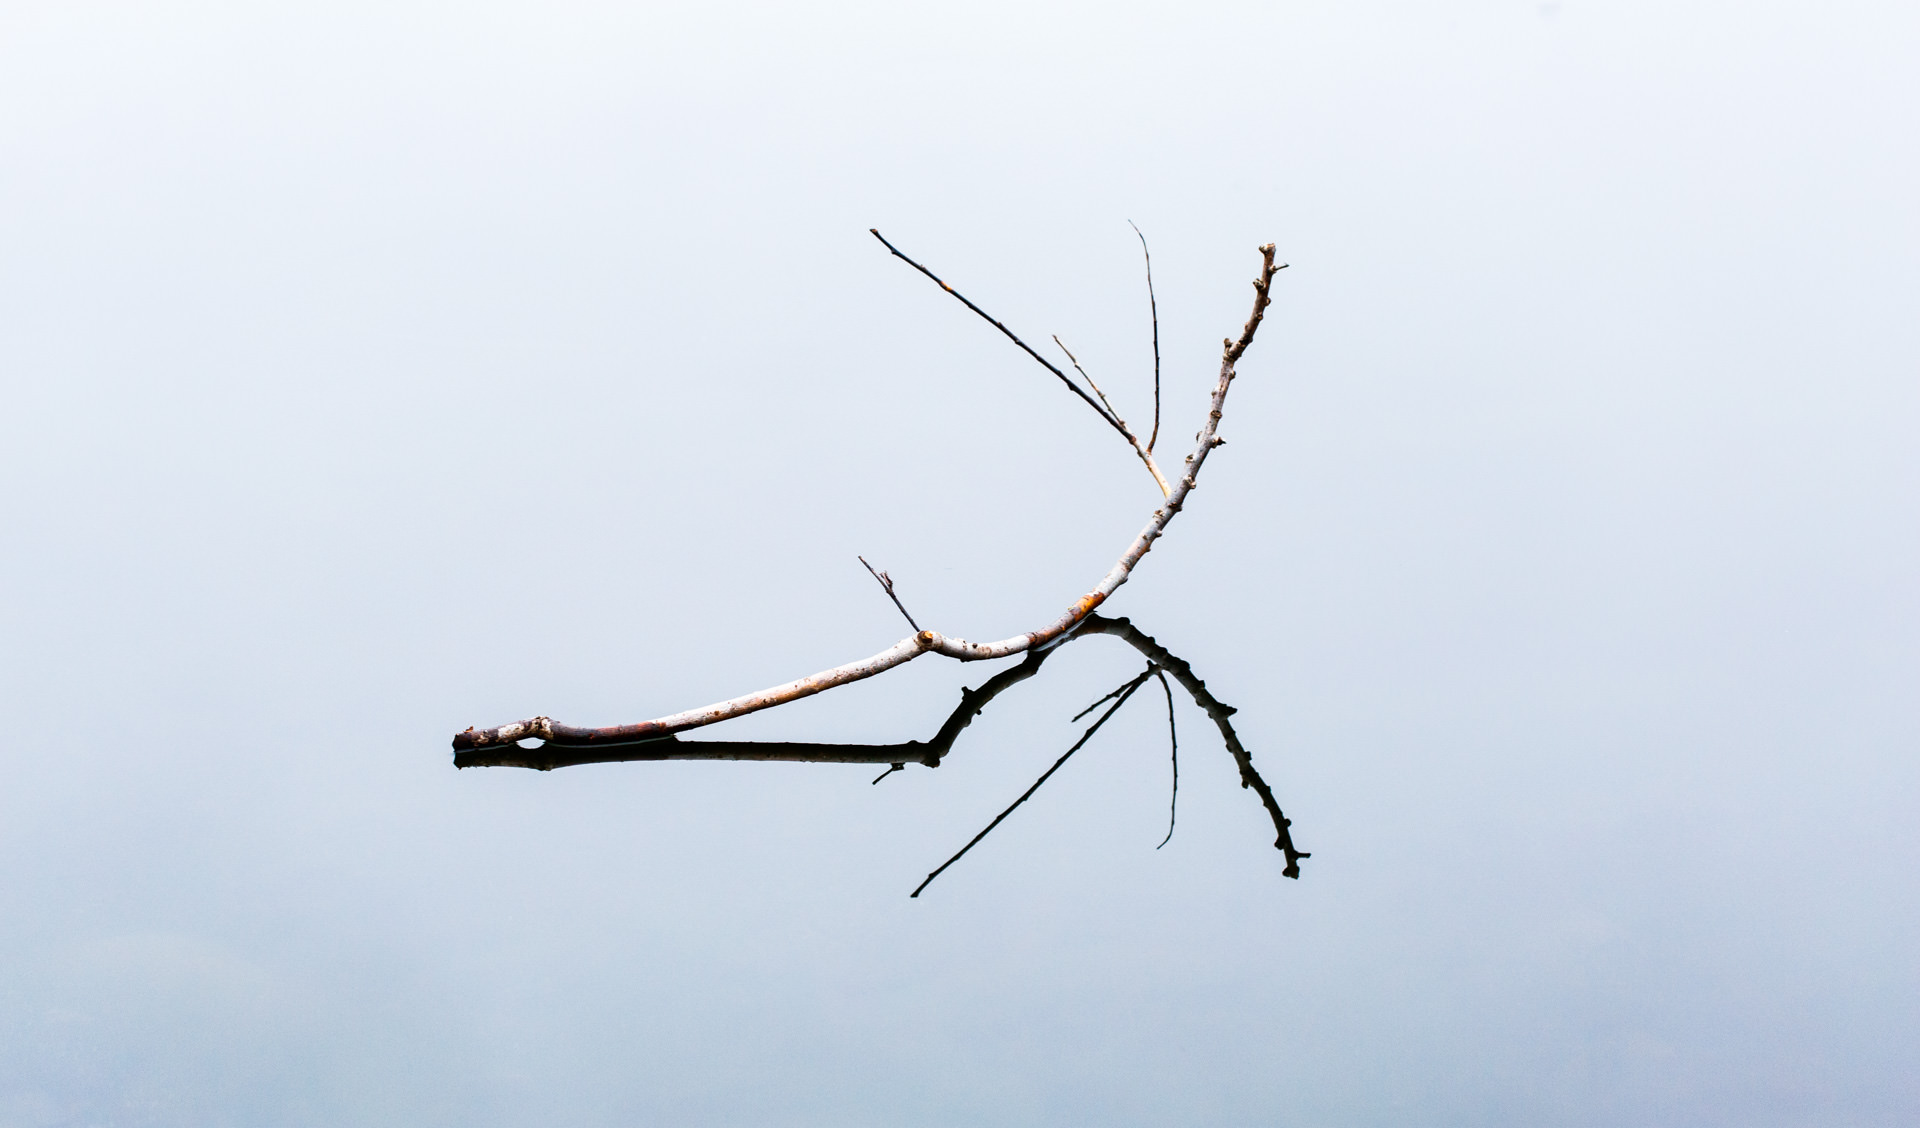 I had already eyed up a branch sitting on top of the lake's frozen surface, but it was out of reach for the me.Inspired, I threw this branch onto the surface.It took a few throws to get one in place - all the others slid further than I expected!